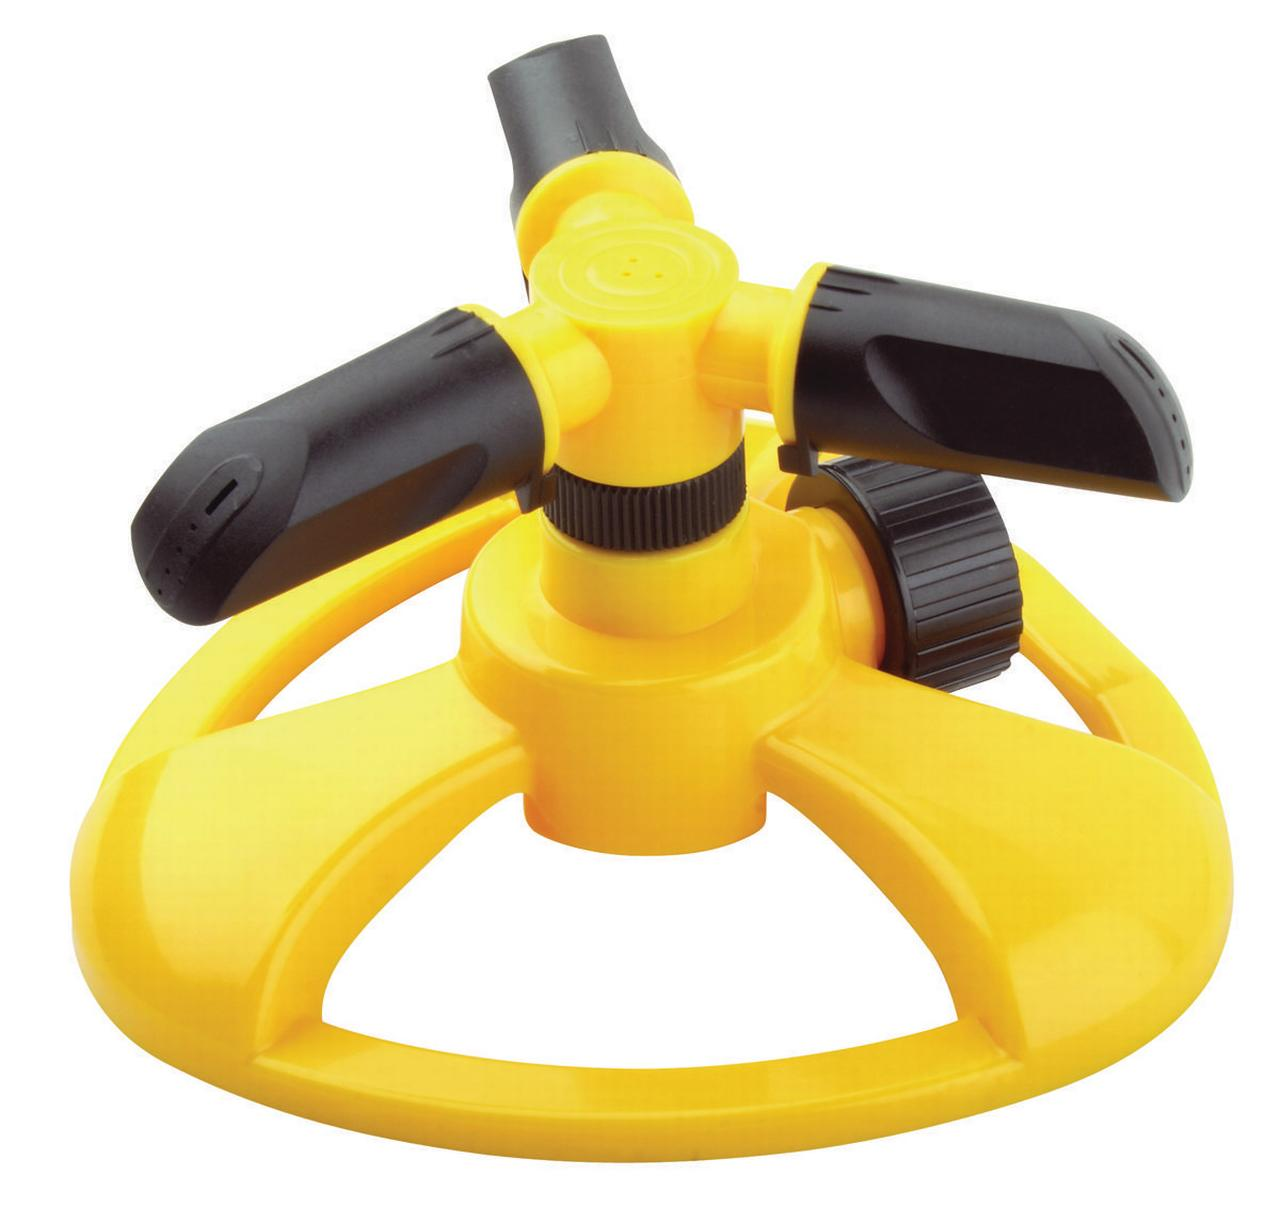 ToolBasix GS9092 Rotary Lawn Sprinkler by Toolbasix